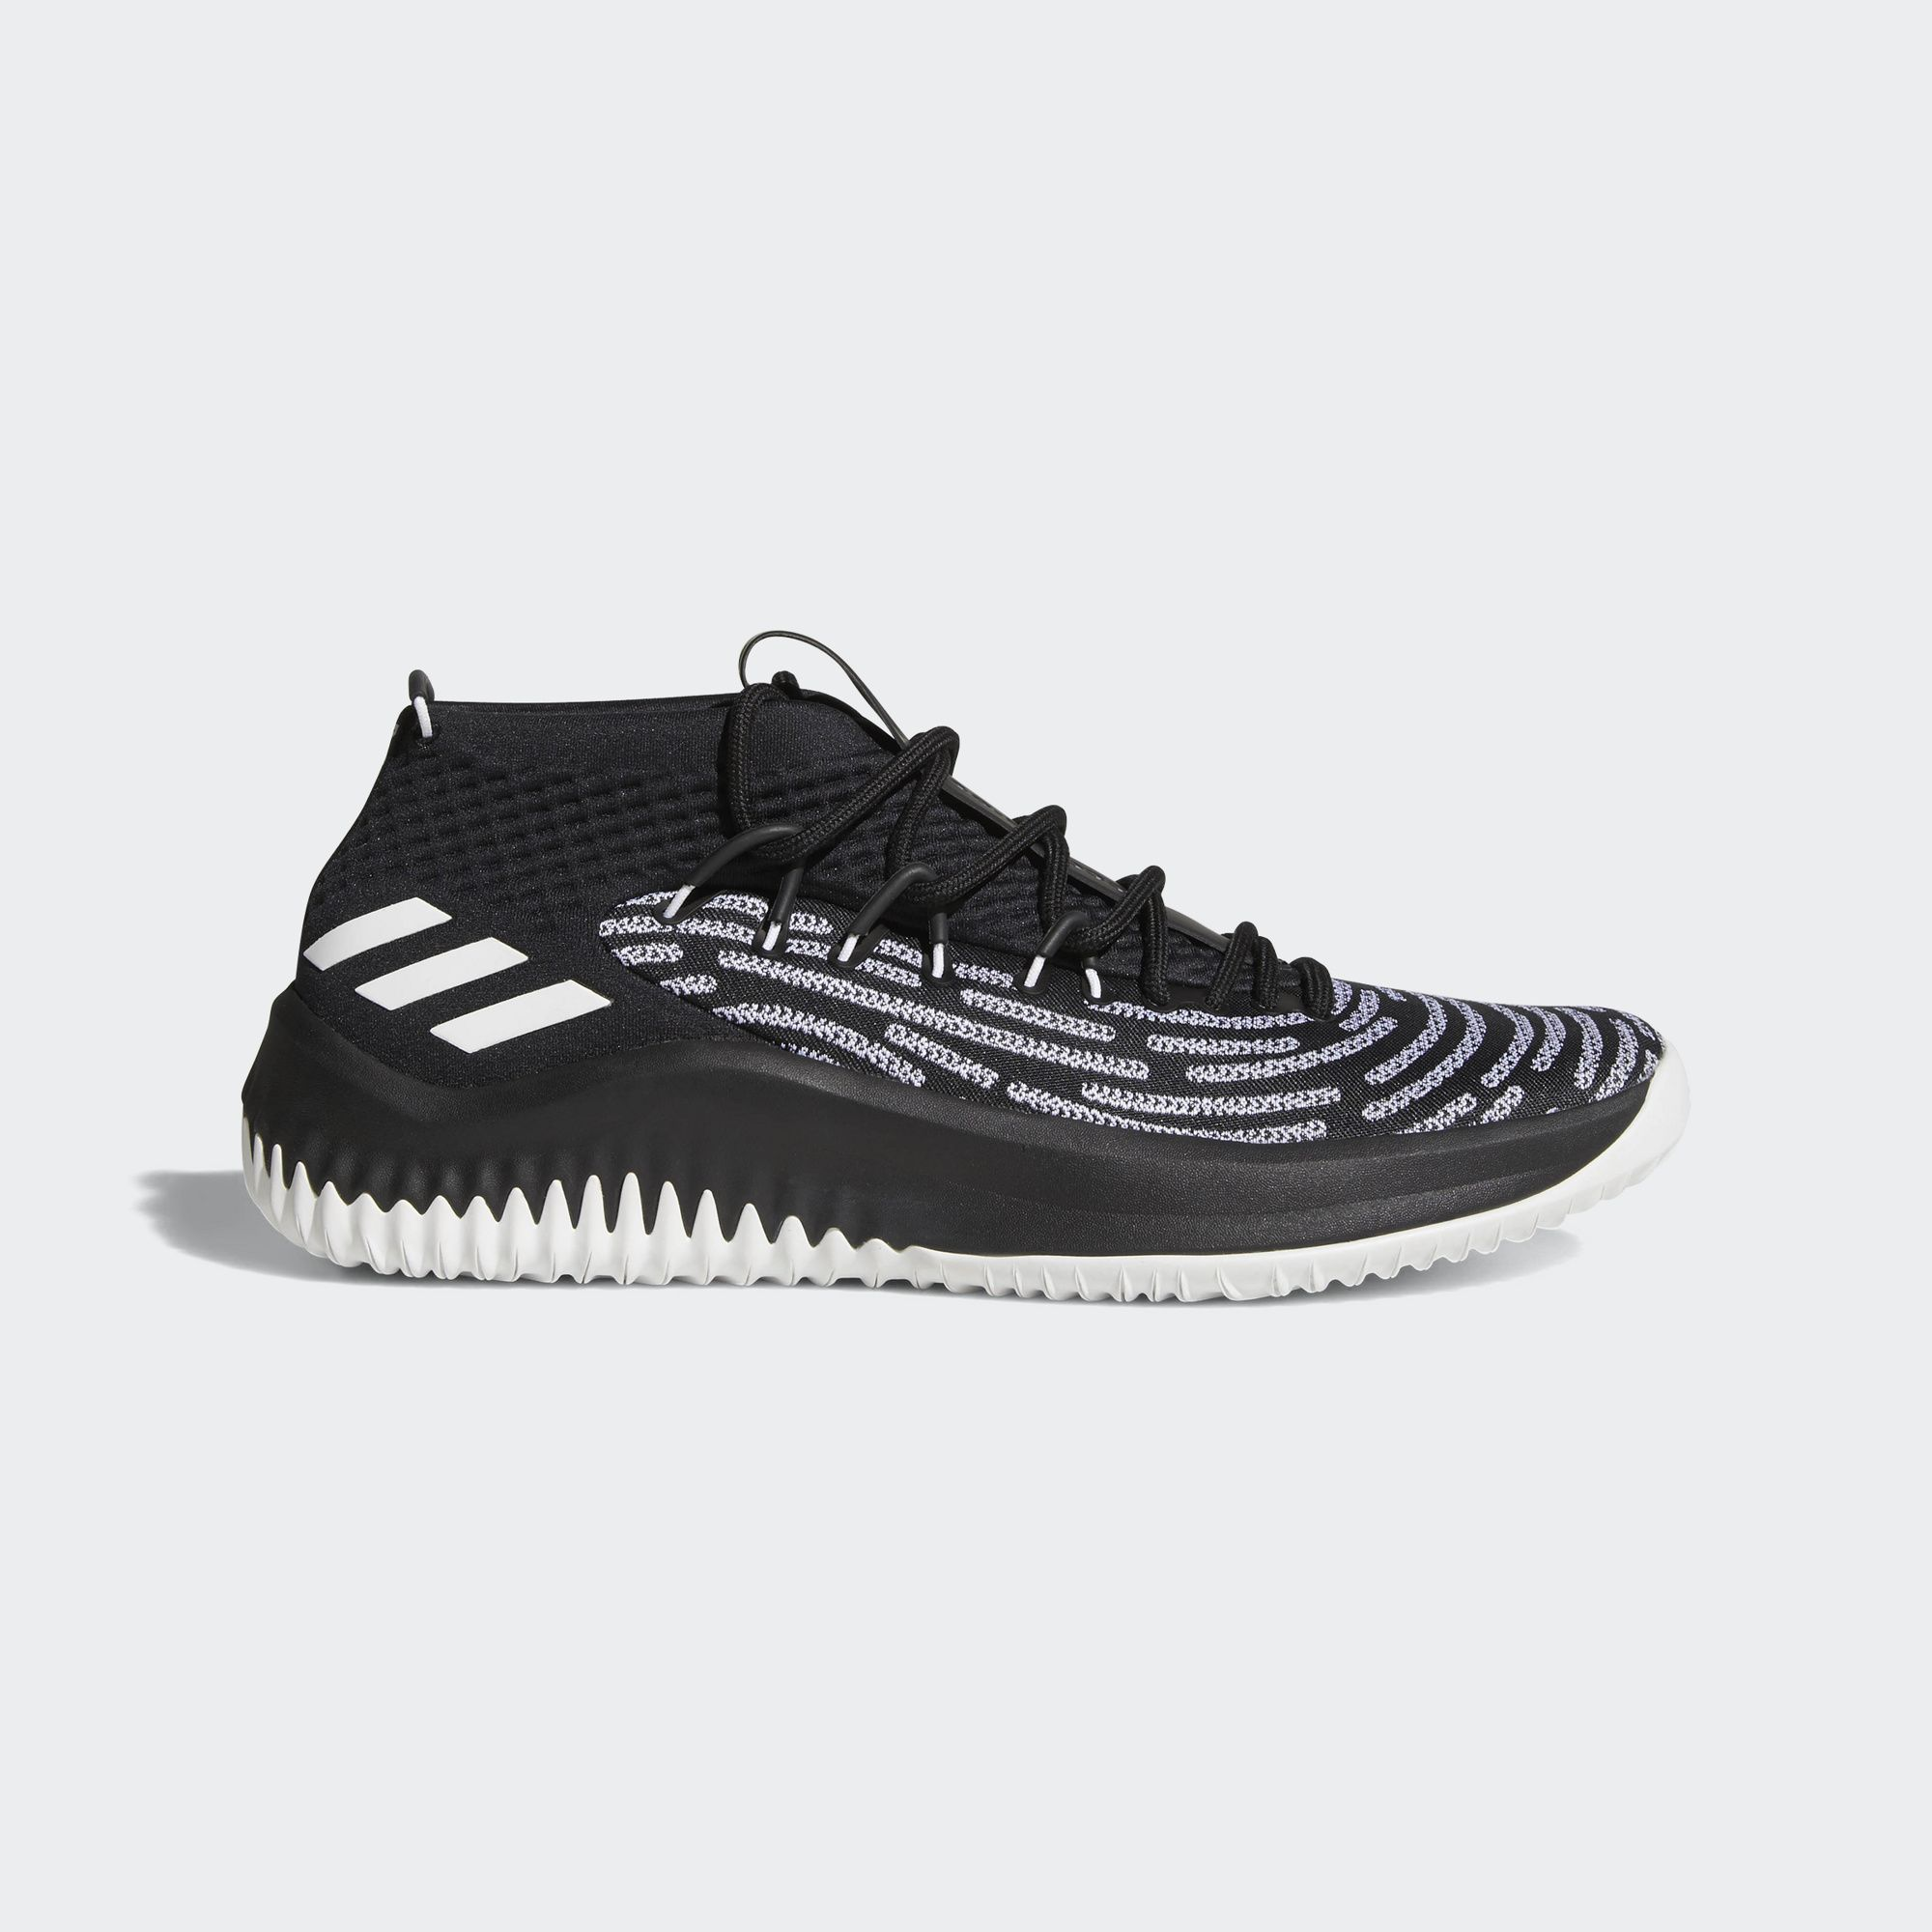 b944e5046c65 adidas Dame 4 Set to Release in New Black and White Colorway ...